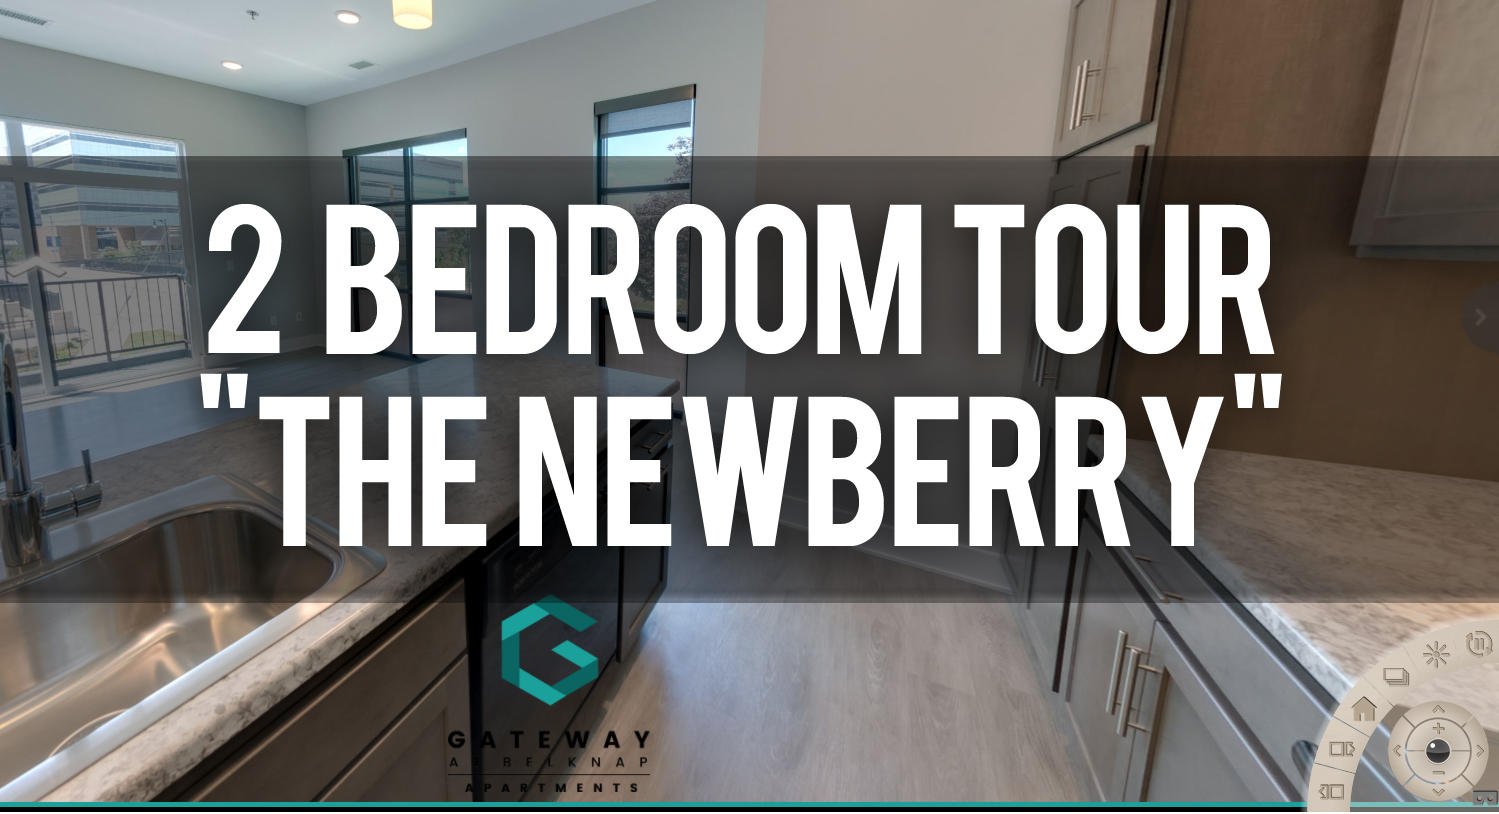 Virtual Tour Gateway at Belknap Apartments 2 bedroom floorplan The Newberry